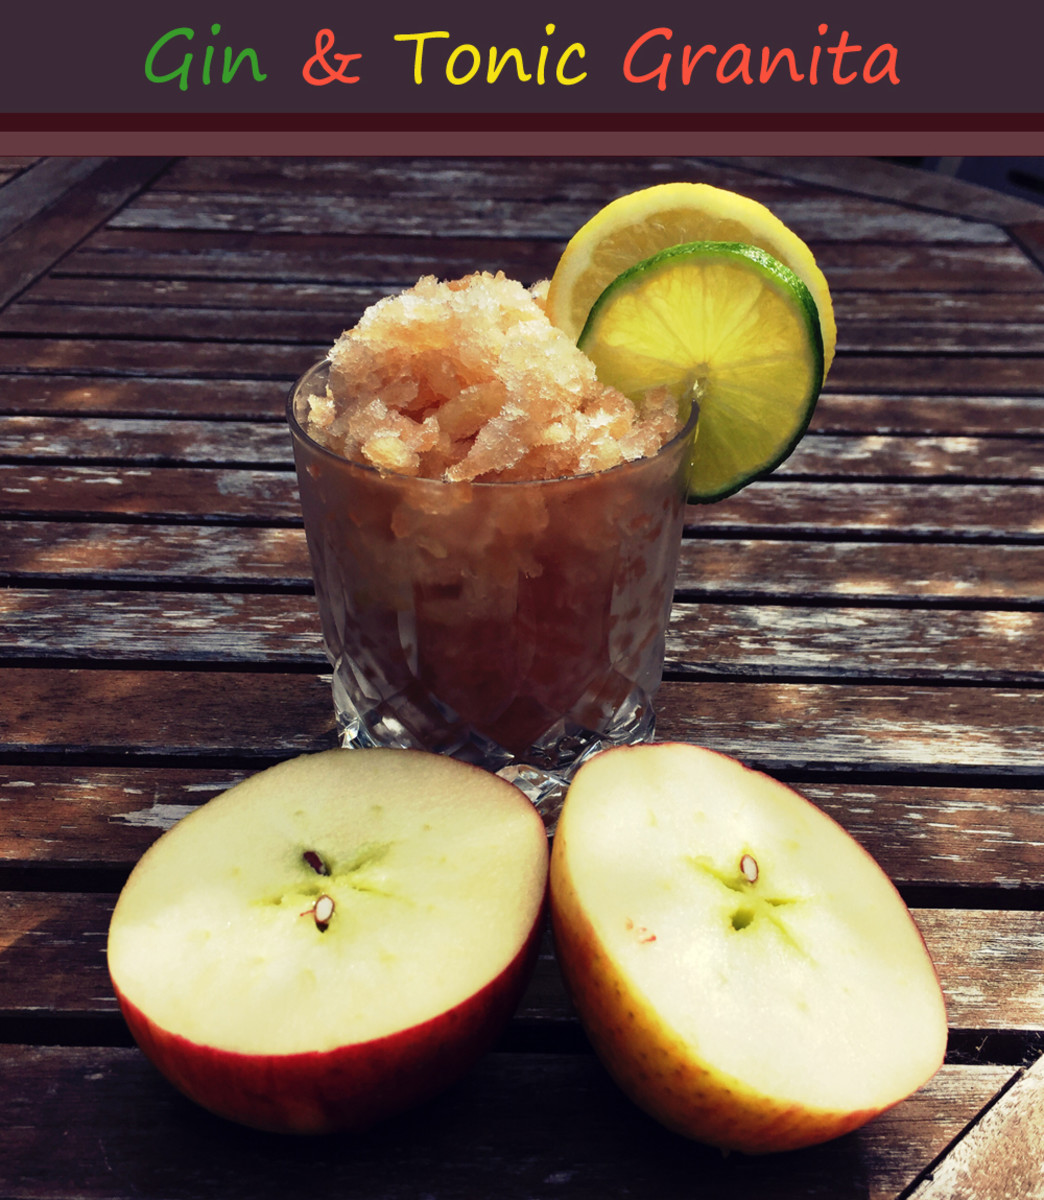 Gin and Tonic Granita